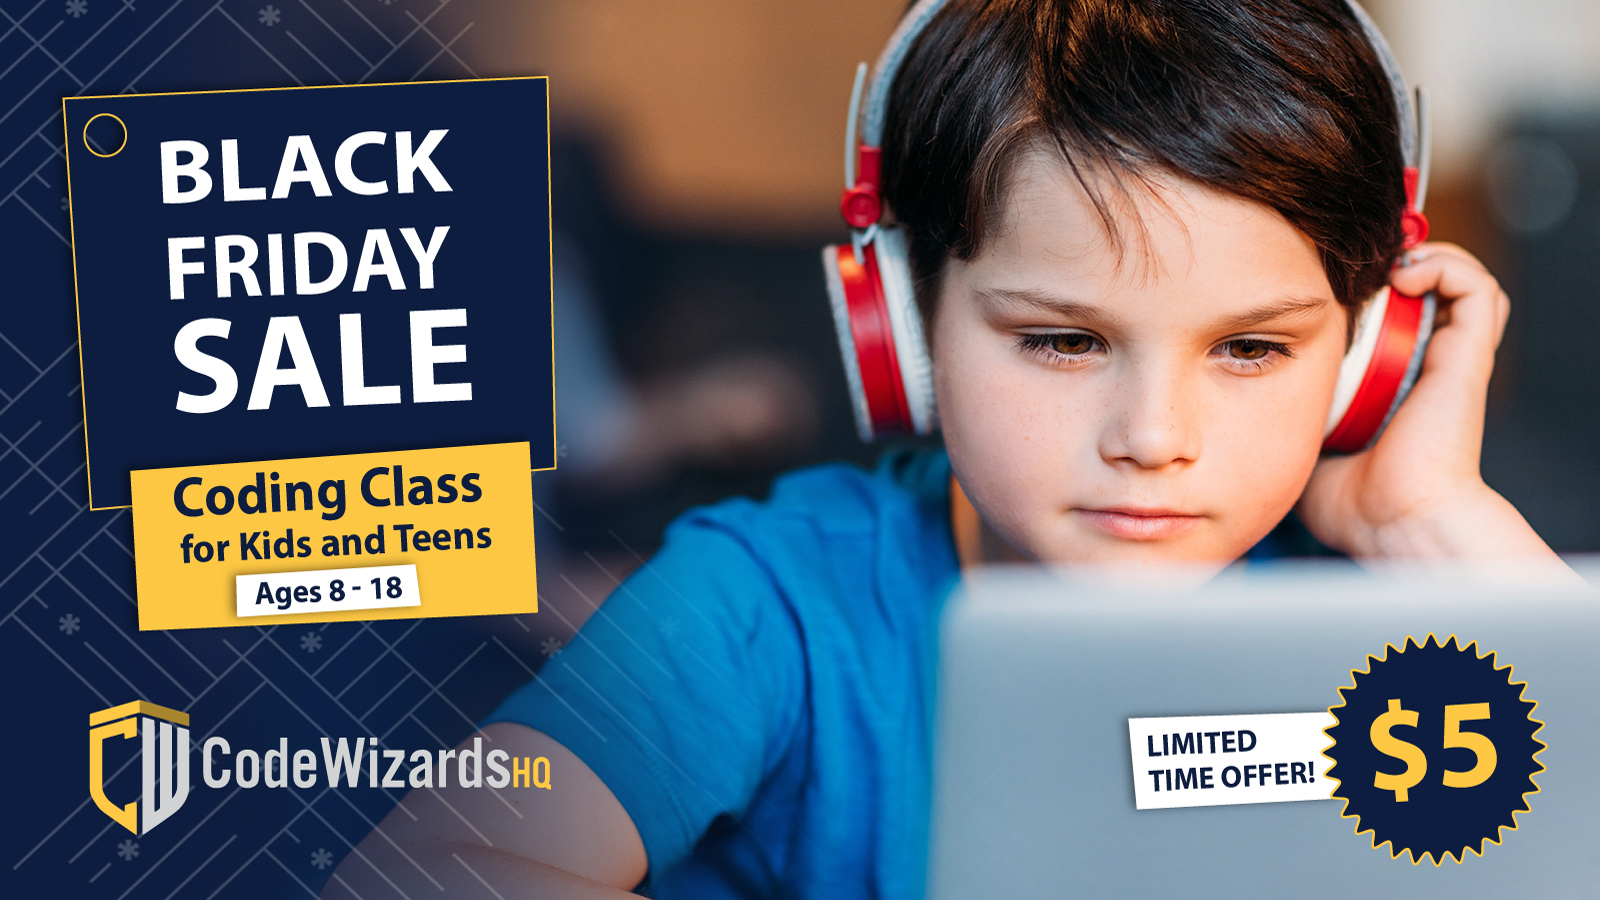 CodeWizardsHQ Gears Up for Its Biggest Black Friday Yet: $5 for 1-hour coding class